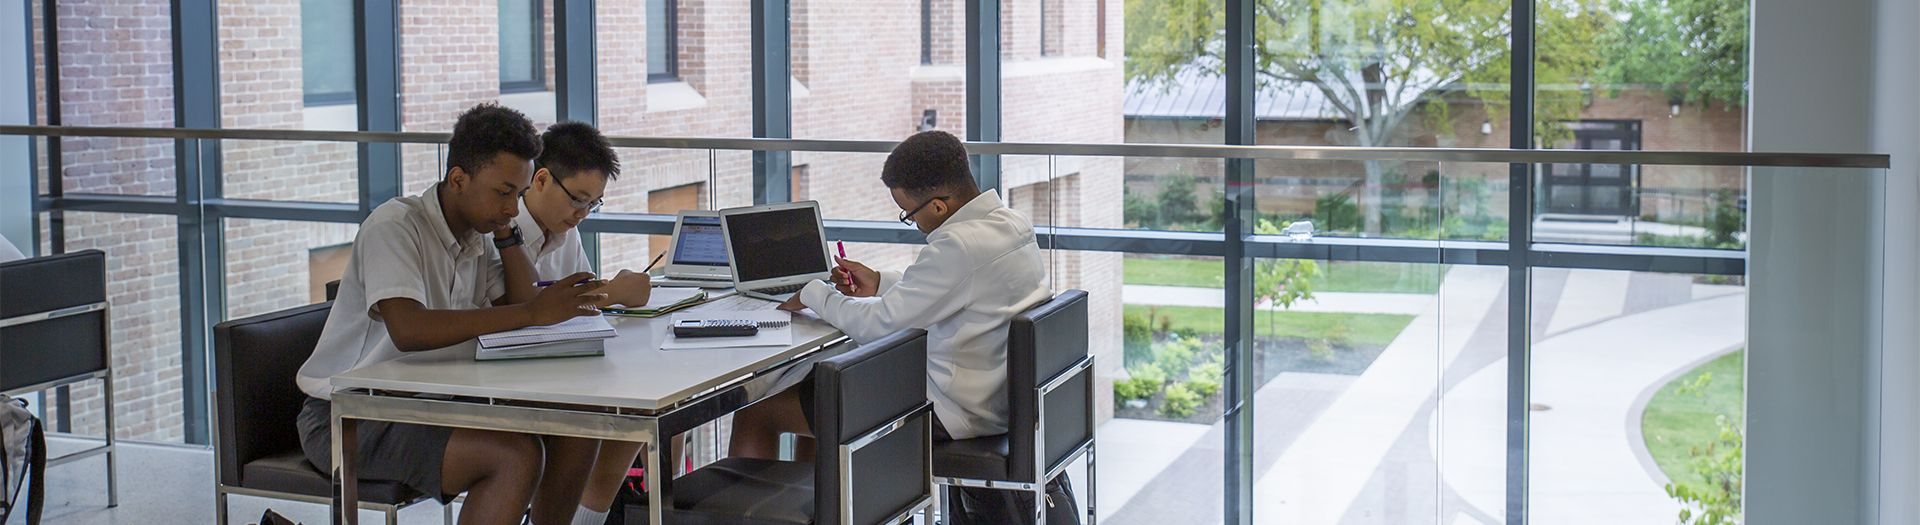 Students study in the Levering Family Study Lounge Bridge between the Winn Science Center and McDermott-Green Science Building.